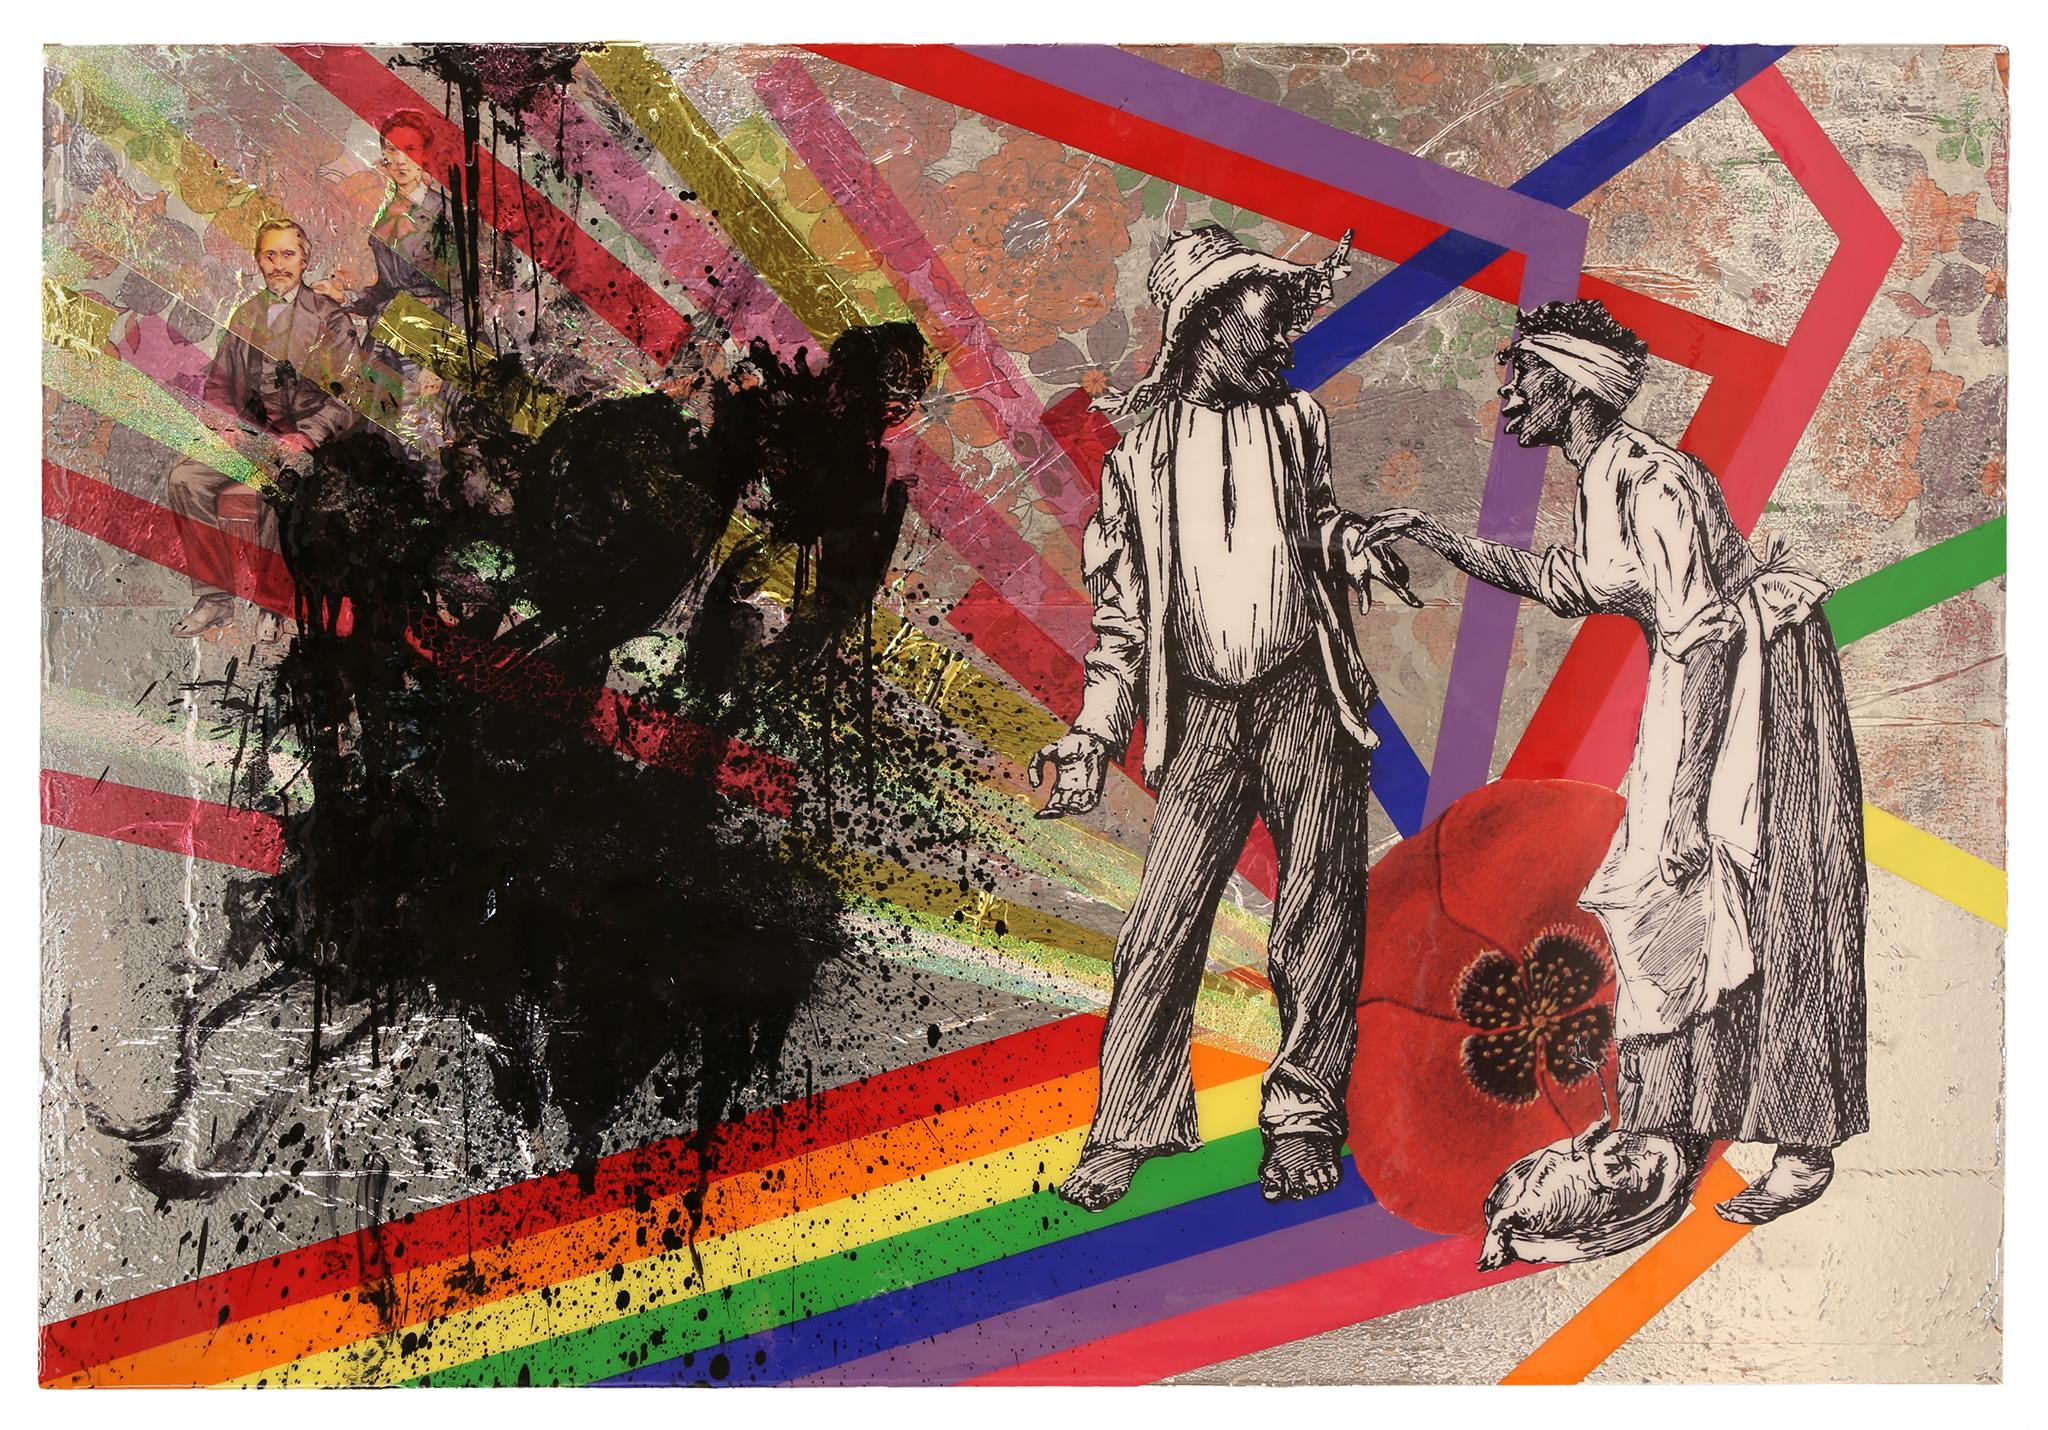 """Long Gallery Harlem, Delano Dunn """"No One Could Be This Tomorrow"""", Spring 2017"""